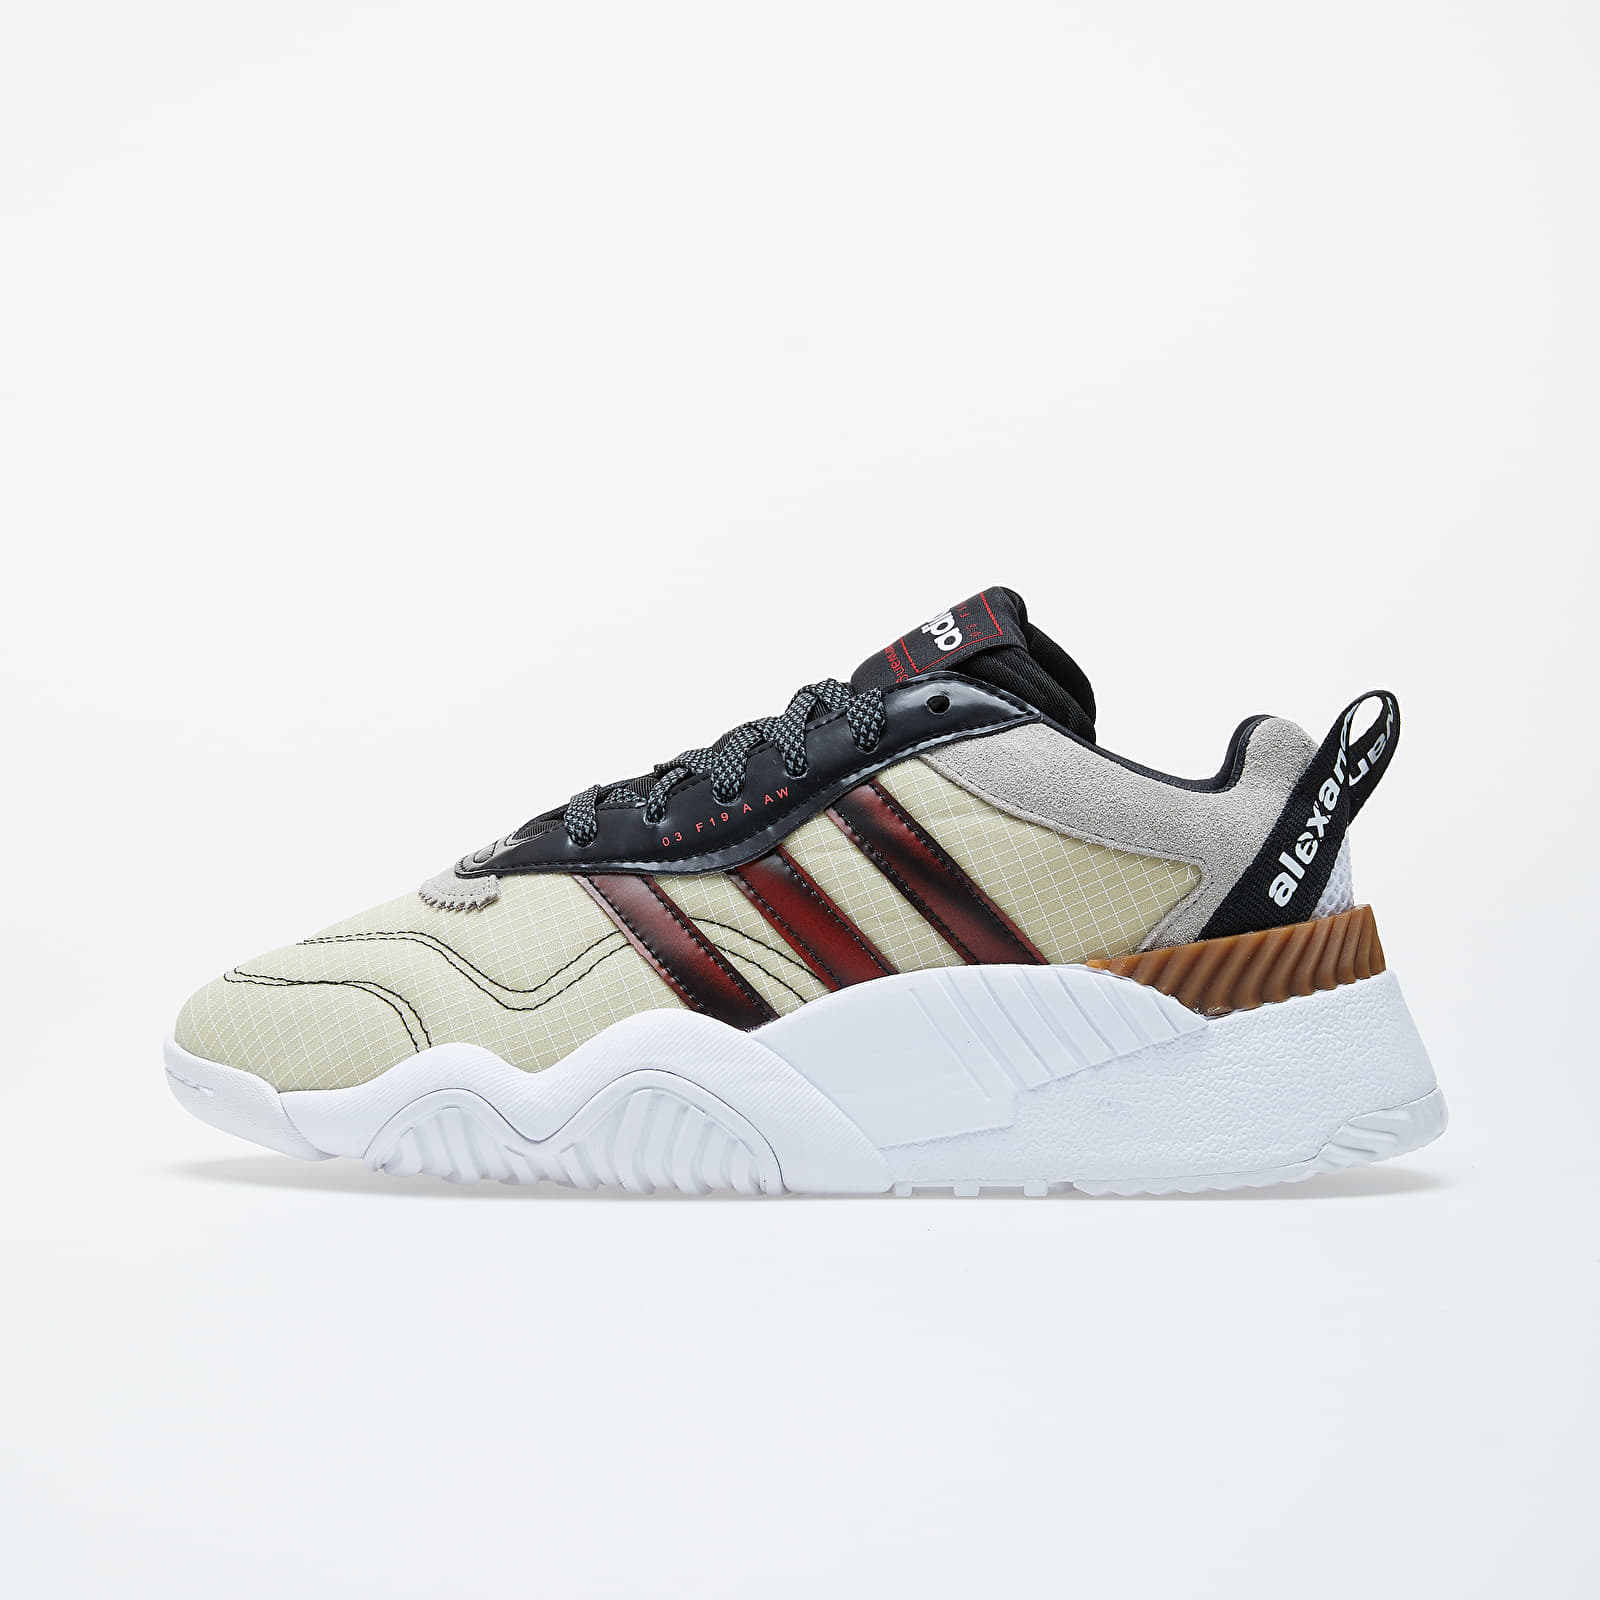 Pánské tenisky a boty adidas x Alexander Wang Turnout Trainer Core Black/ Light Brown/ Bright Red